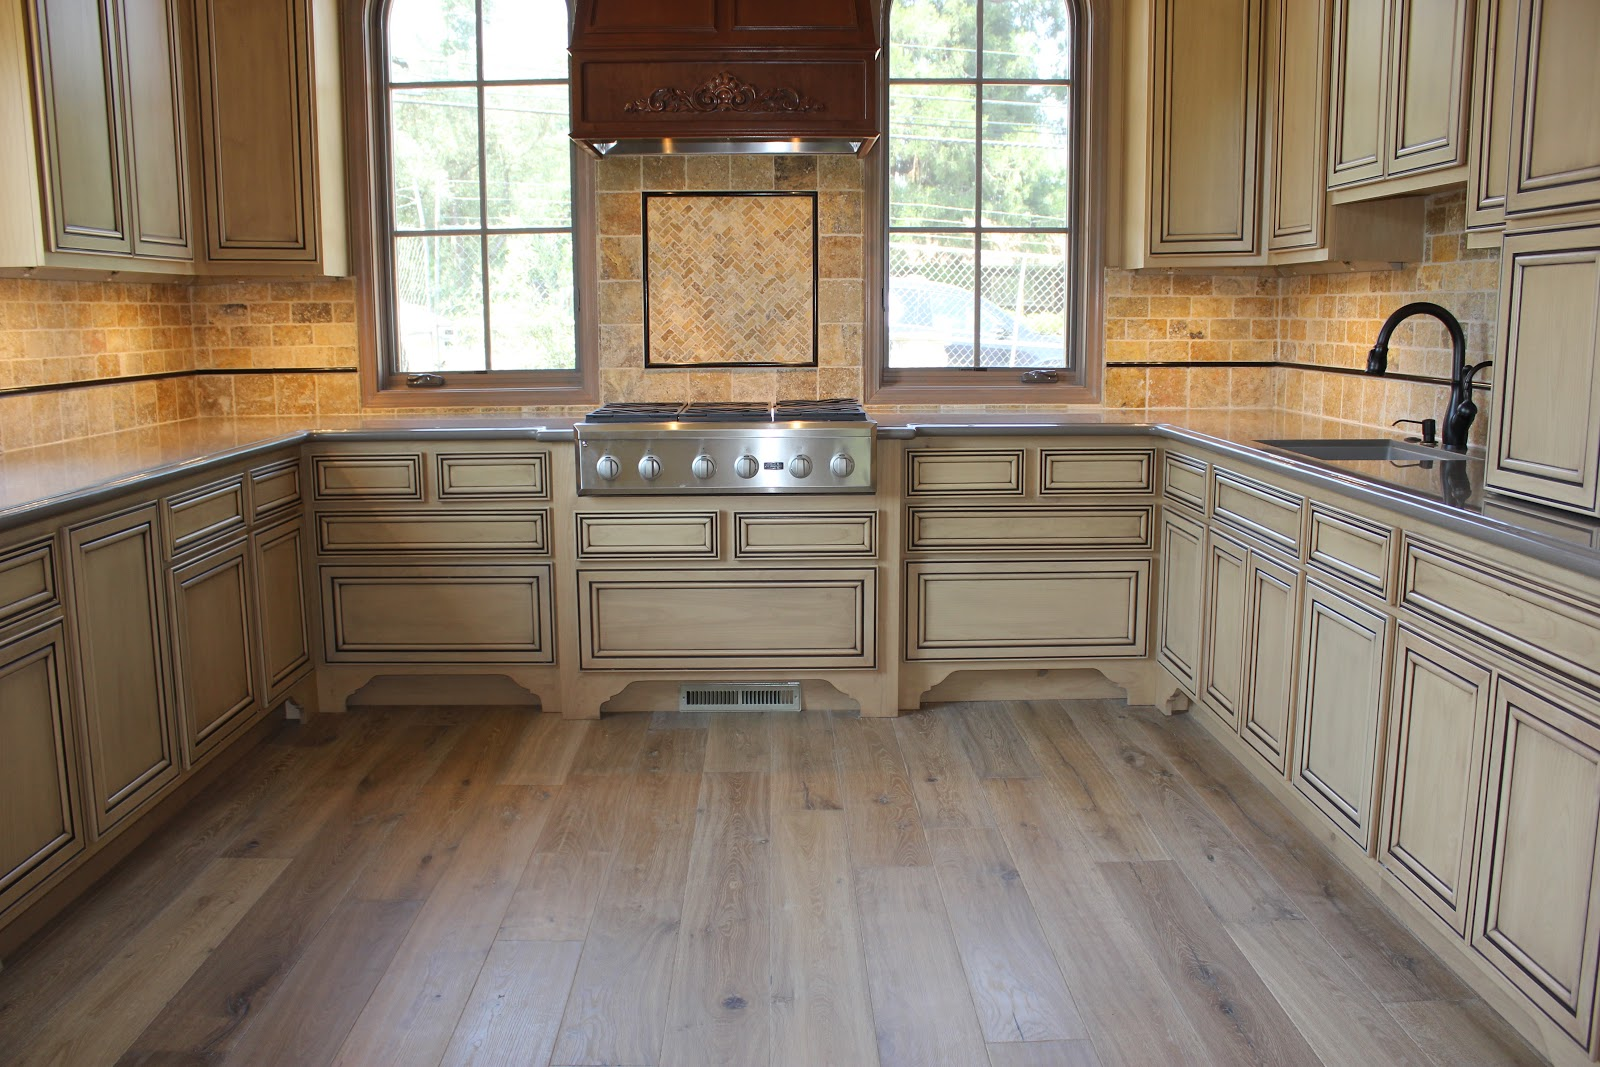 Simas floor and design company hardwood flooring by royal oak for Flooring for kitchen floors